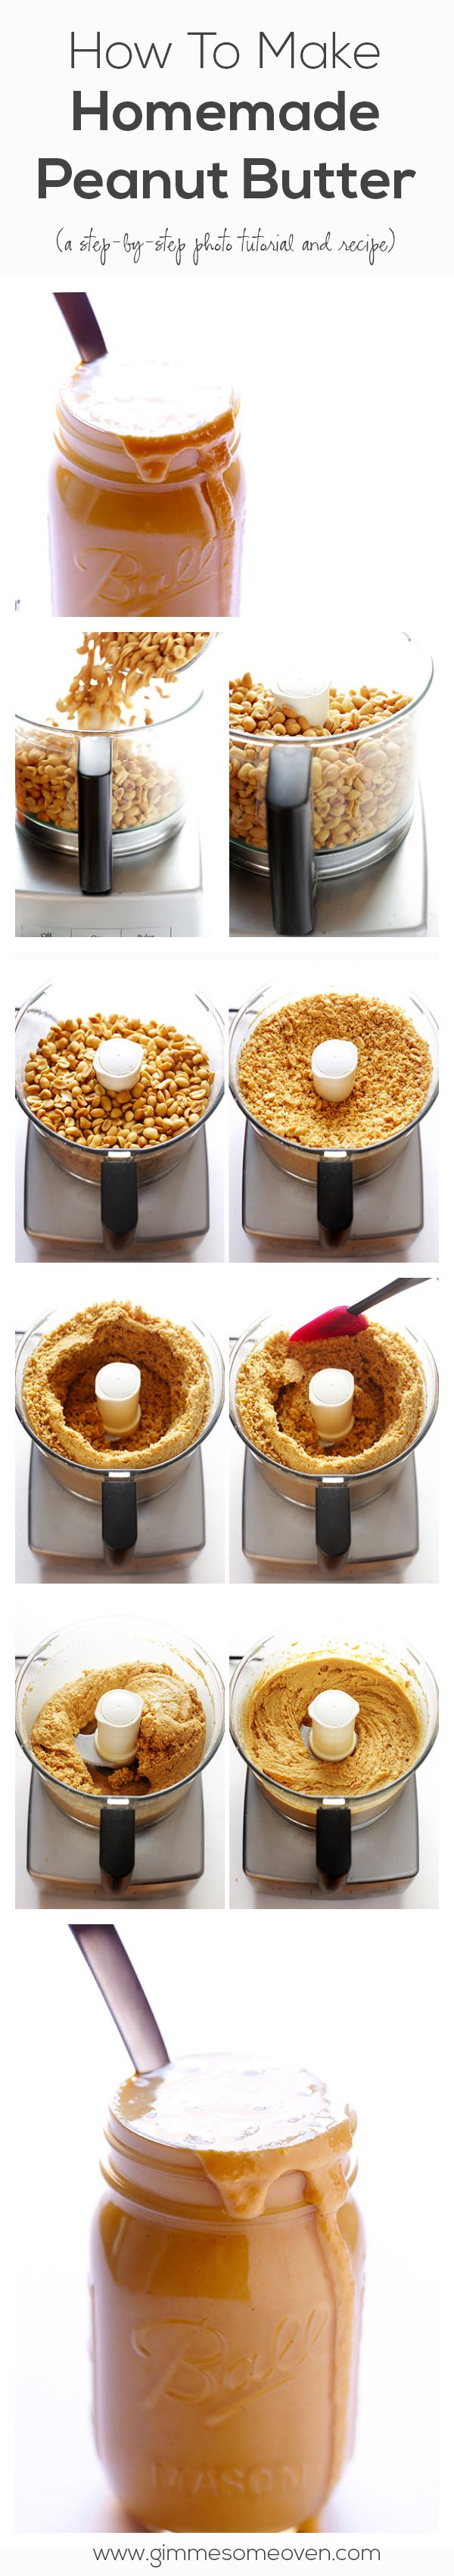 All you need are PEANUTS to make homemade peanut butter -- it's so easy! | gimmesomeoven.com #tutorial #diy